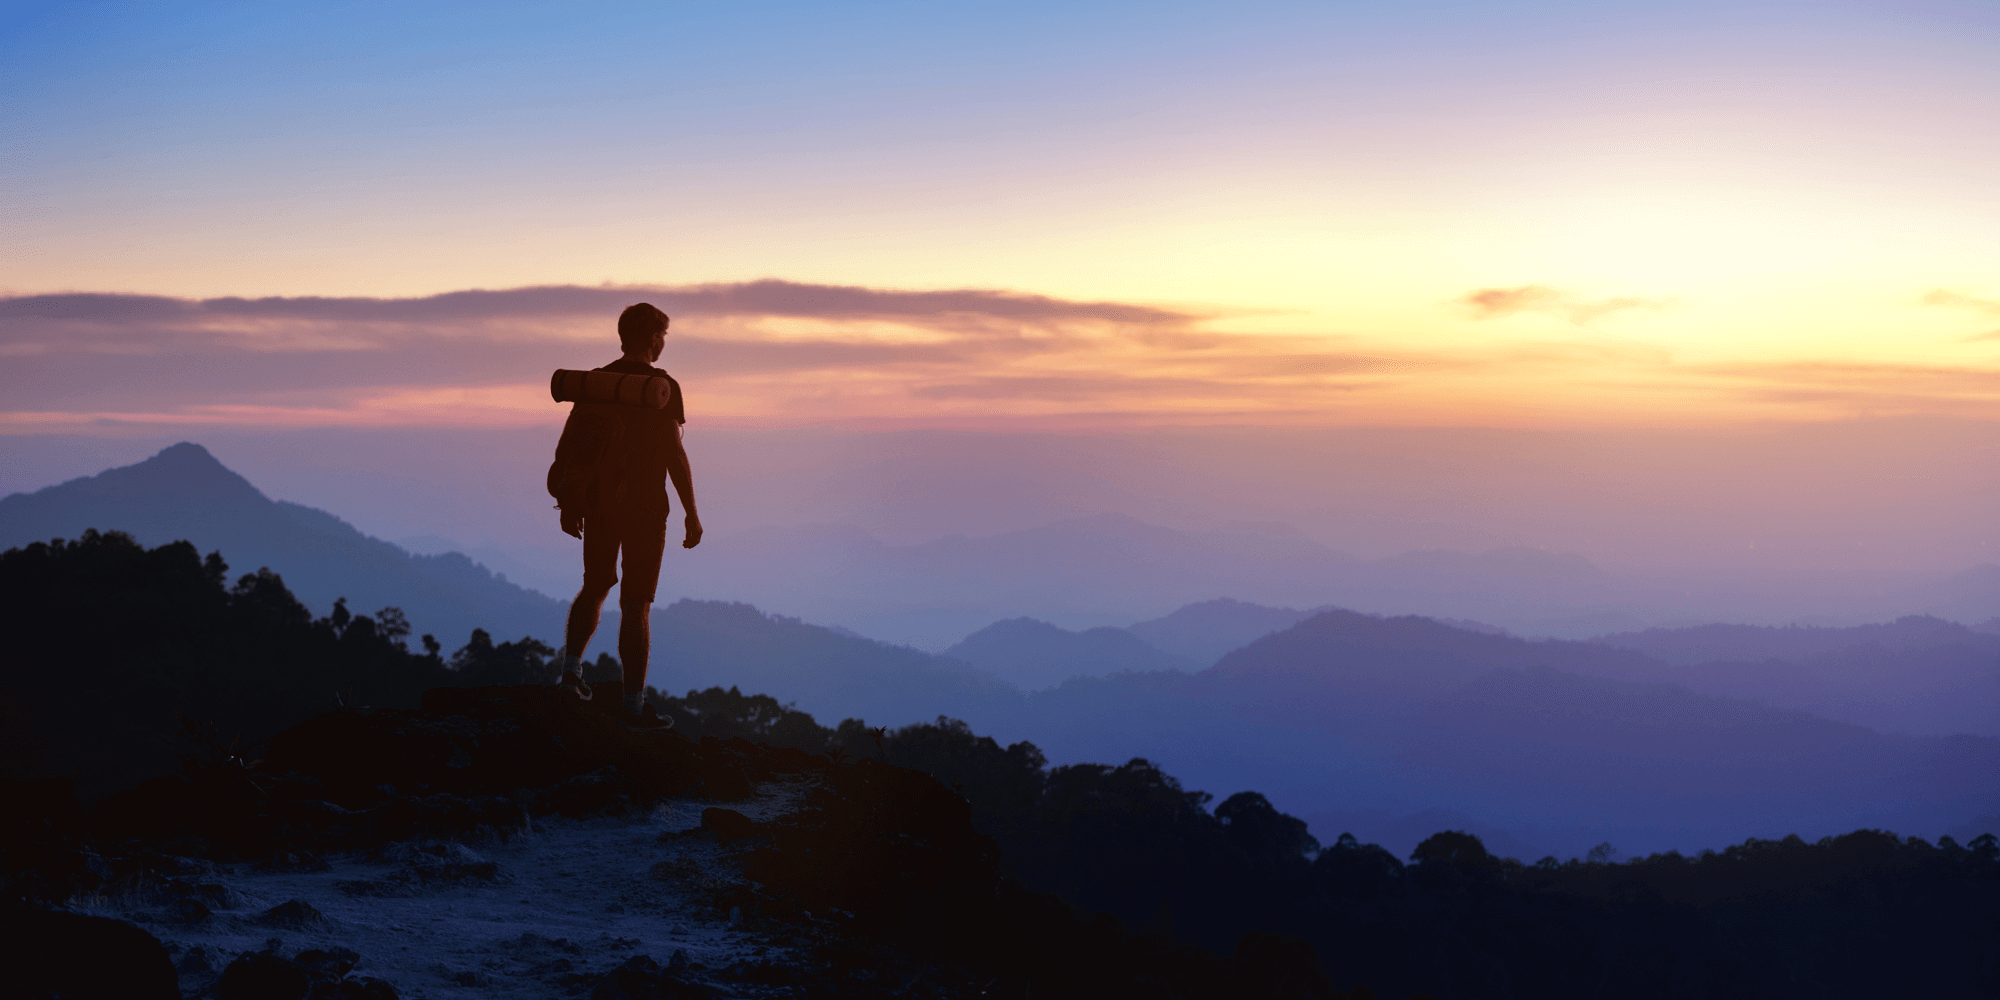 silhouette of man hiking and looking at purple sunset